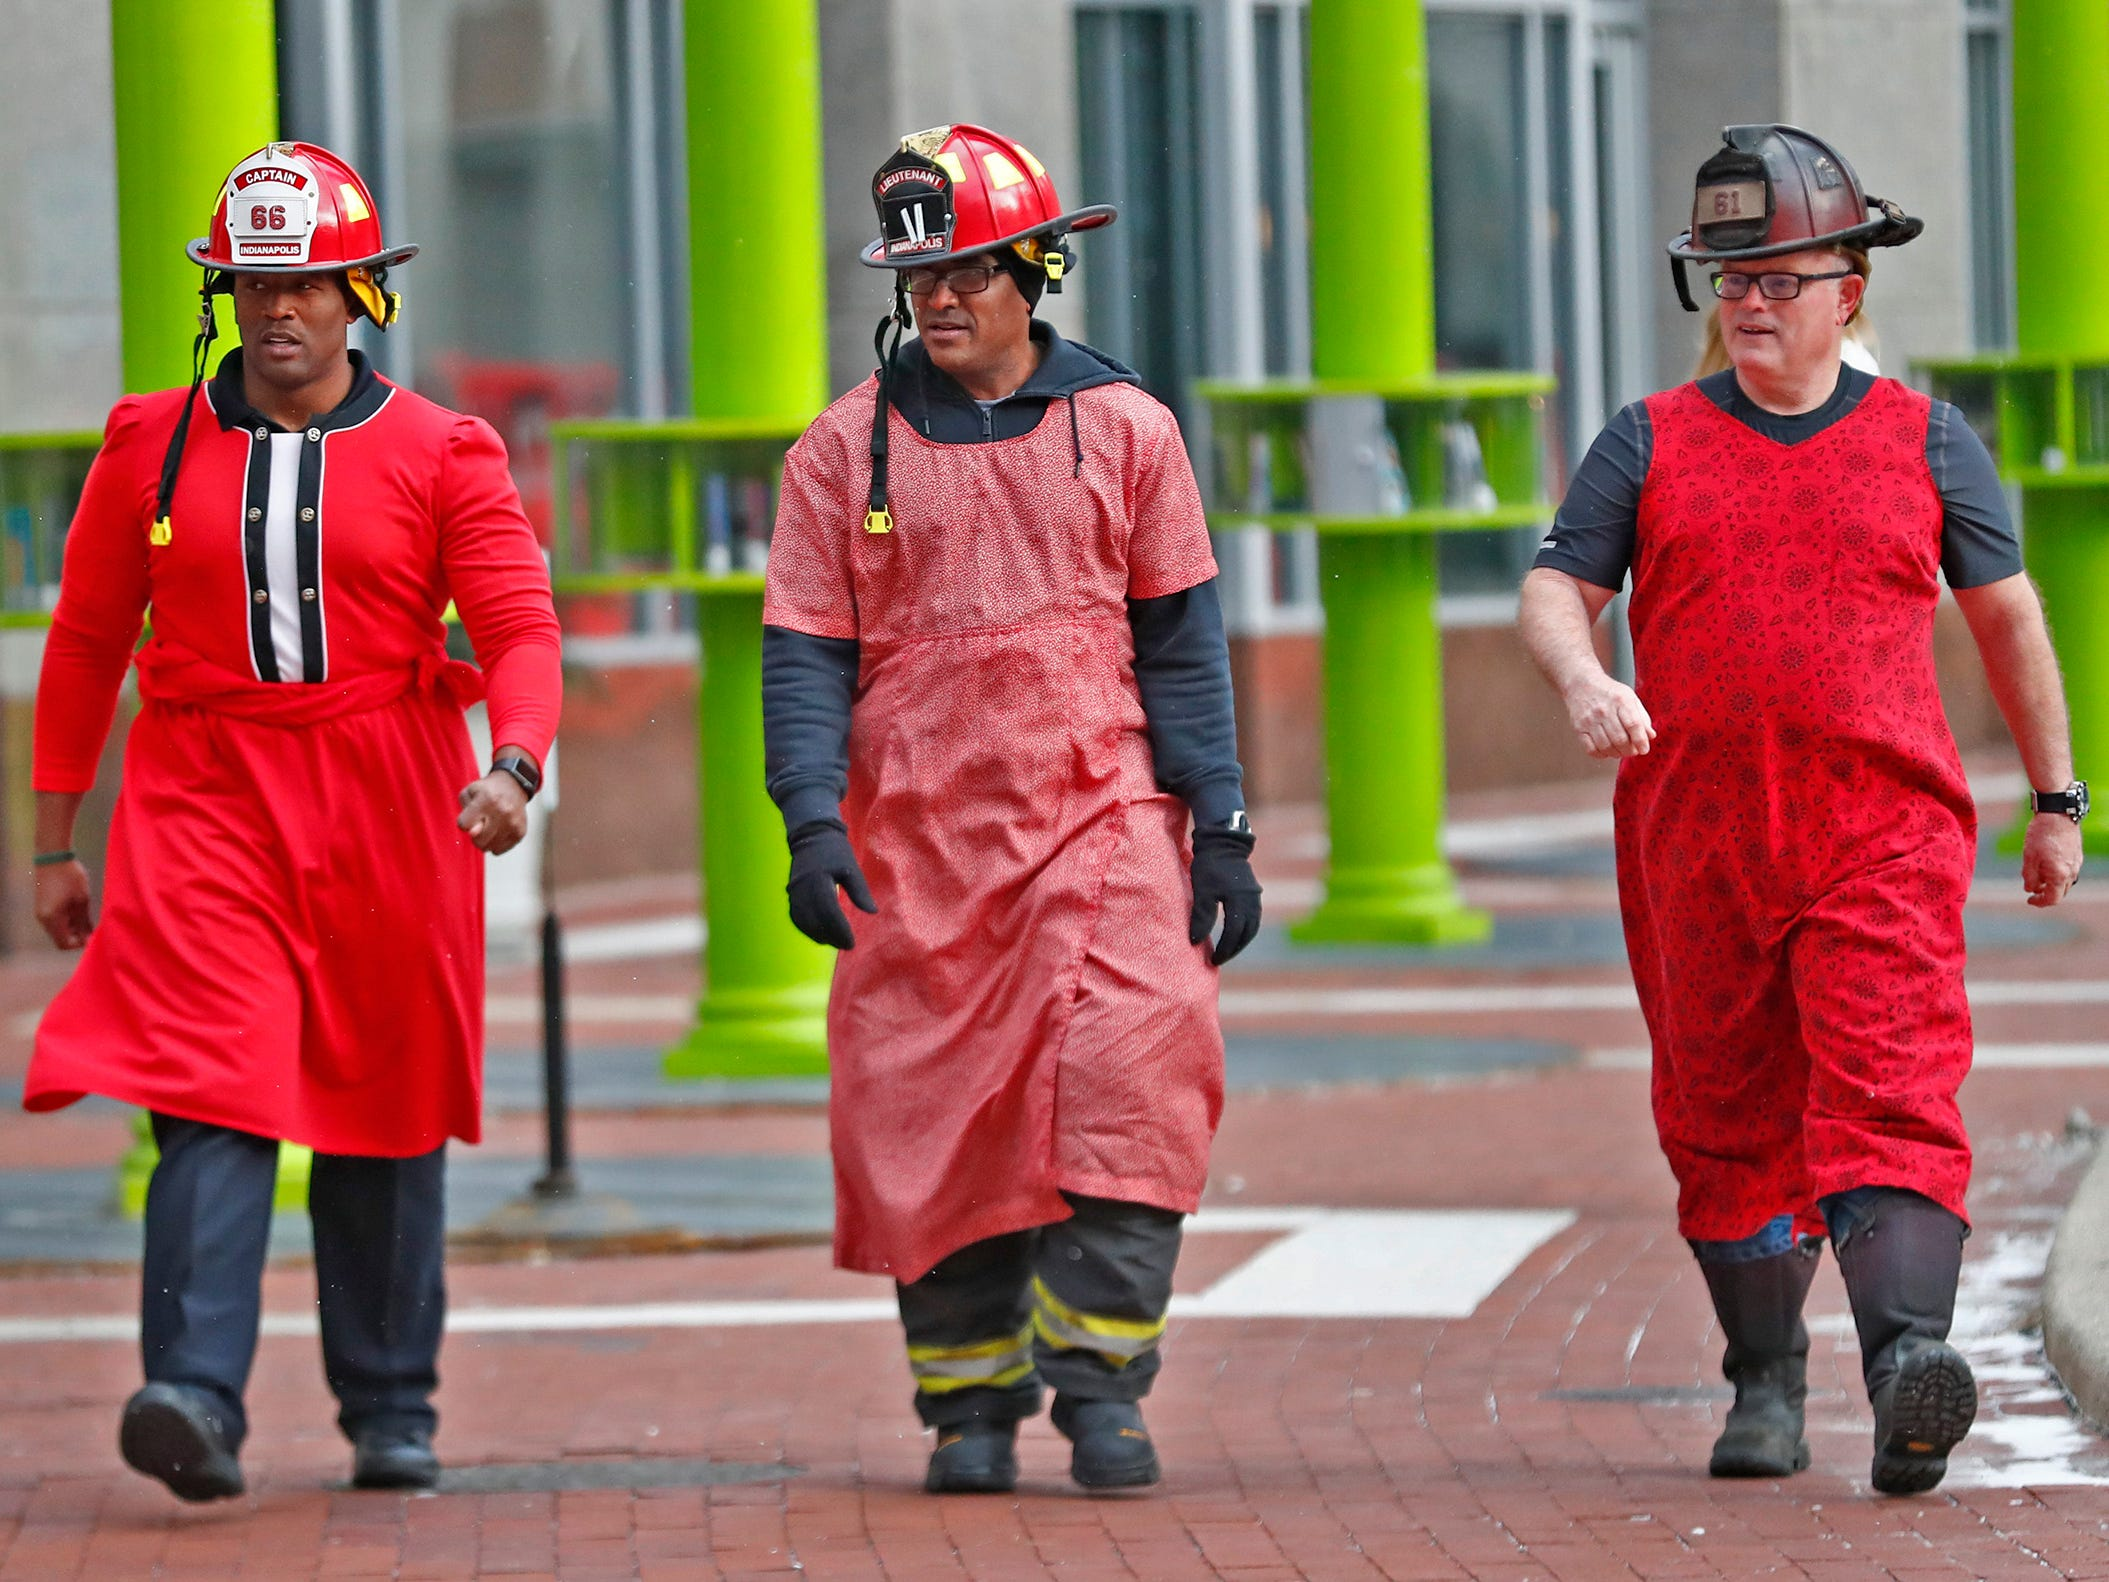 IFD's Corey Floyd, from left, Willie Thompson, and Jim King don red dresses to walk around Monument Circle for the Red Dress Dash, Friday, Feb. 8, 2019.  The American Heart Association put on the seventh annual event to support women's heart health.  The event raises awareness for the American Heart Association's Go Red For Women movement.  Heart disease is the leading cause of death among women.